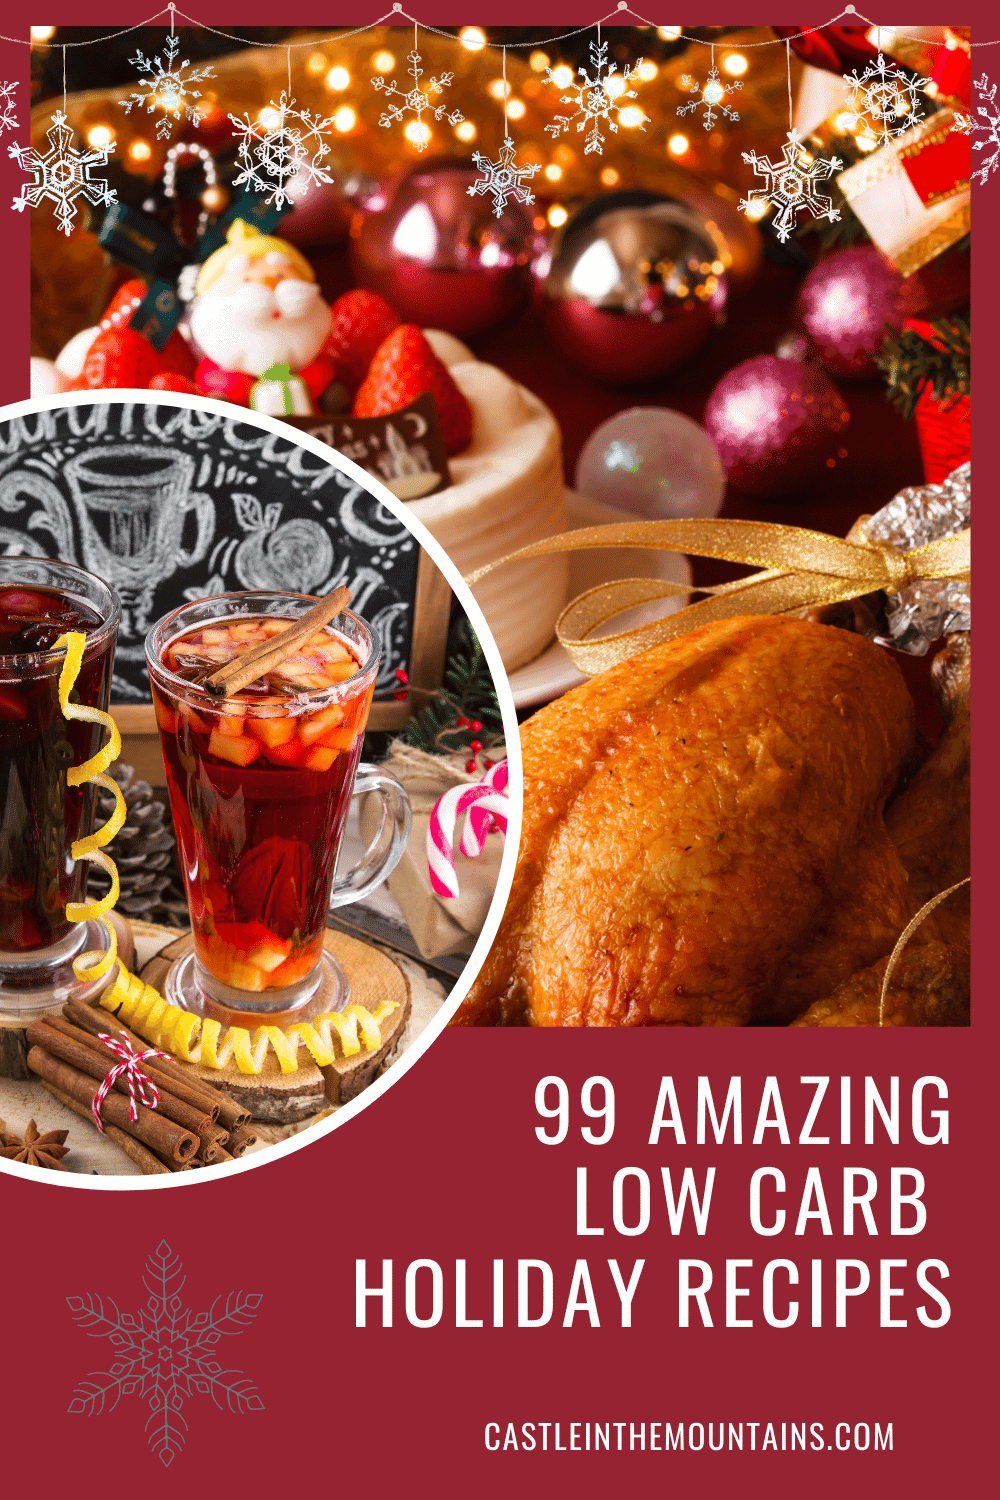 99 Low Carb Holiday Recipes- Easy to make dishes!